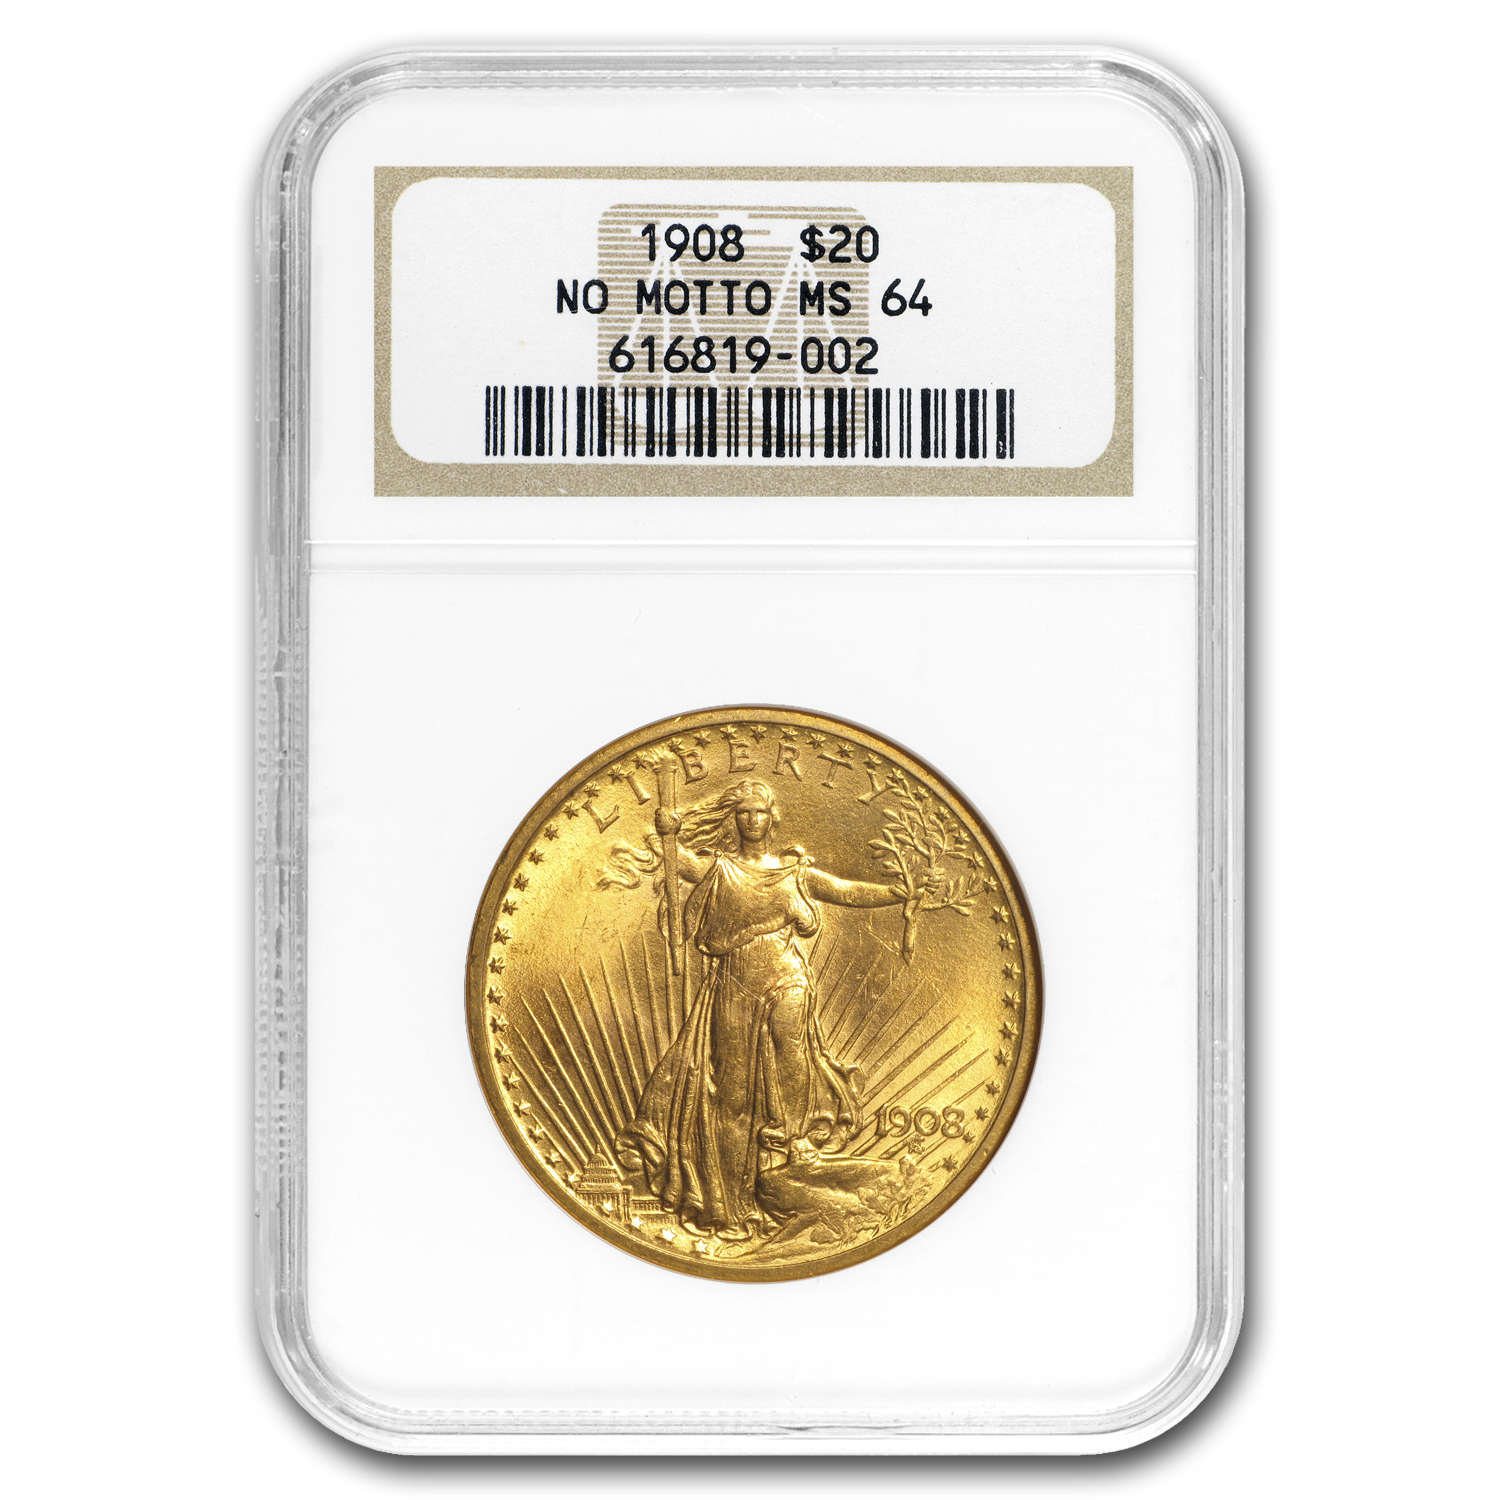 1908 $20 Saint-Gaudens Gold Double Eagle No Motto MS-64 NGC